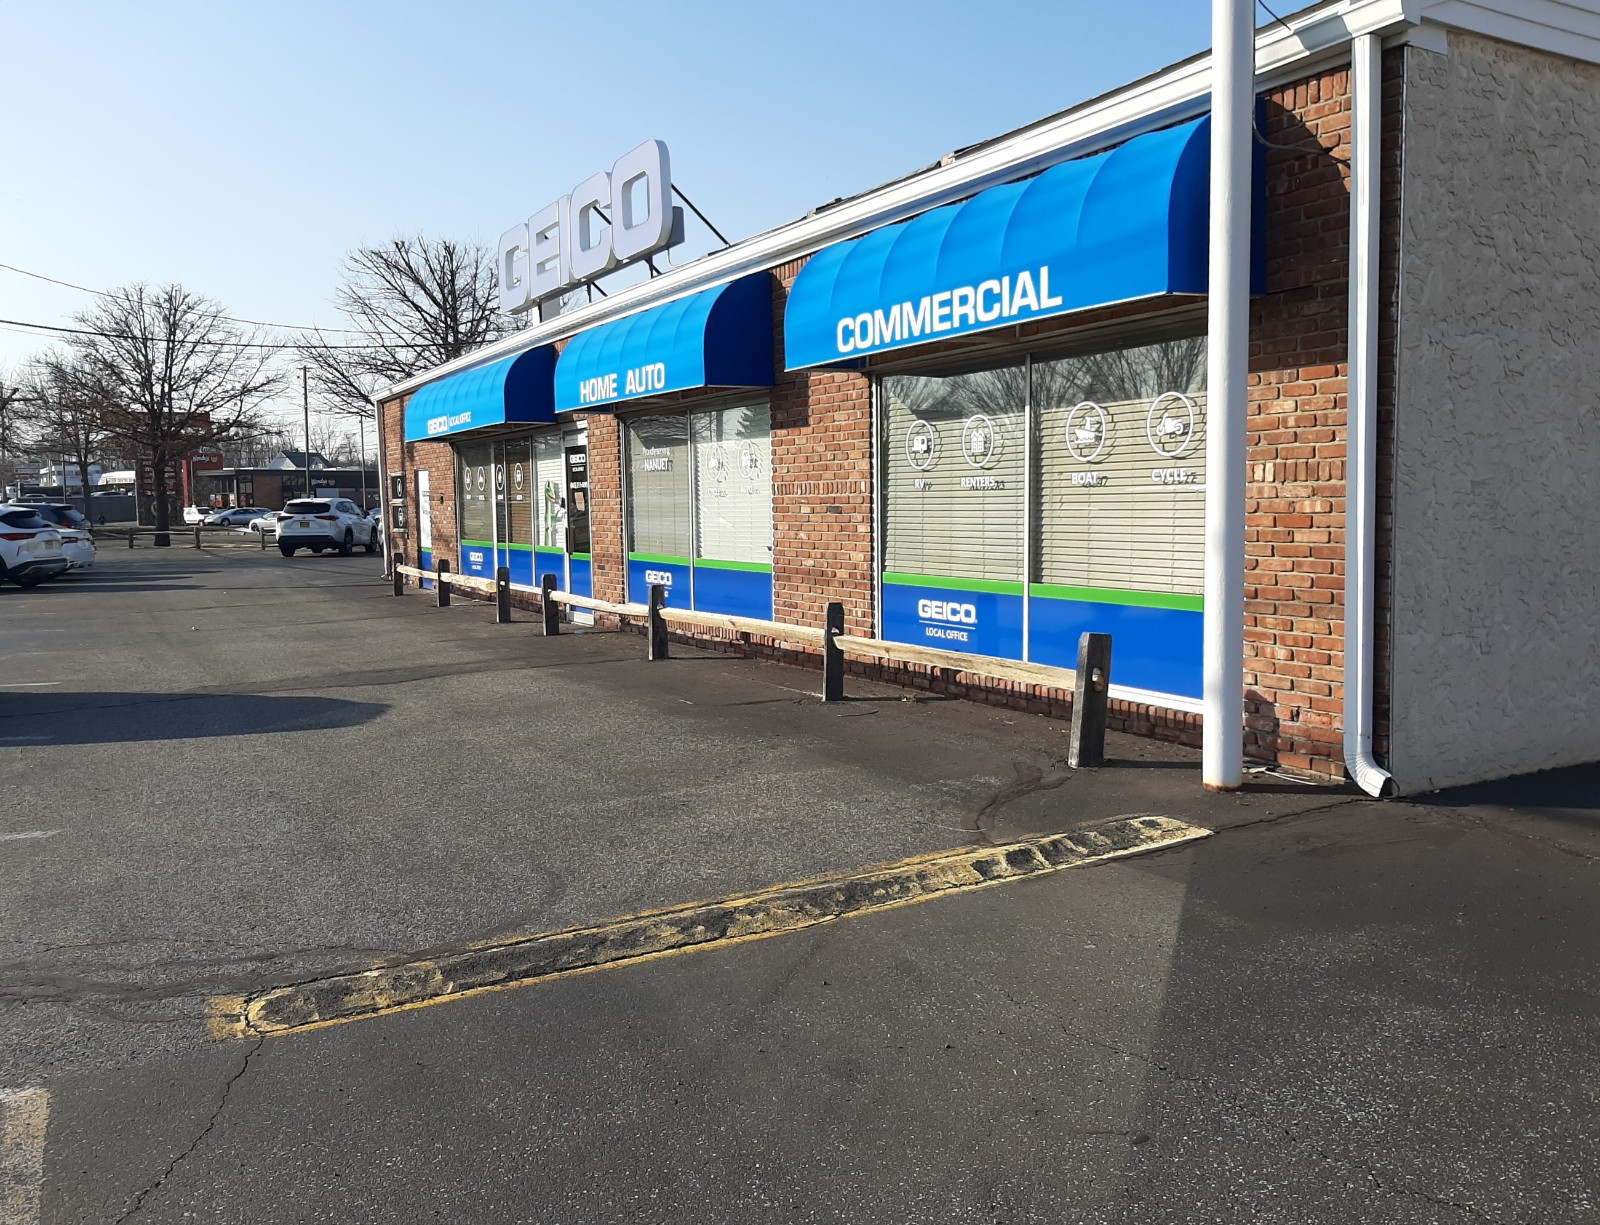 Sale of Retail Site on Route 59, Nanuet, NY